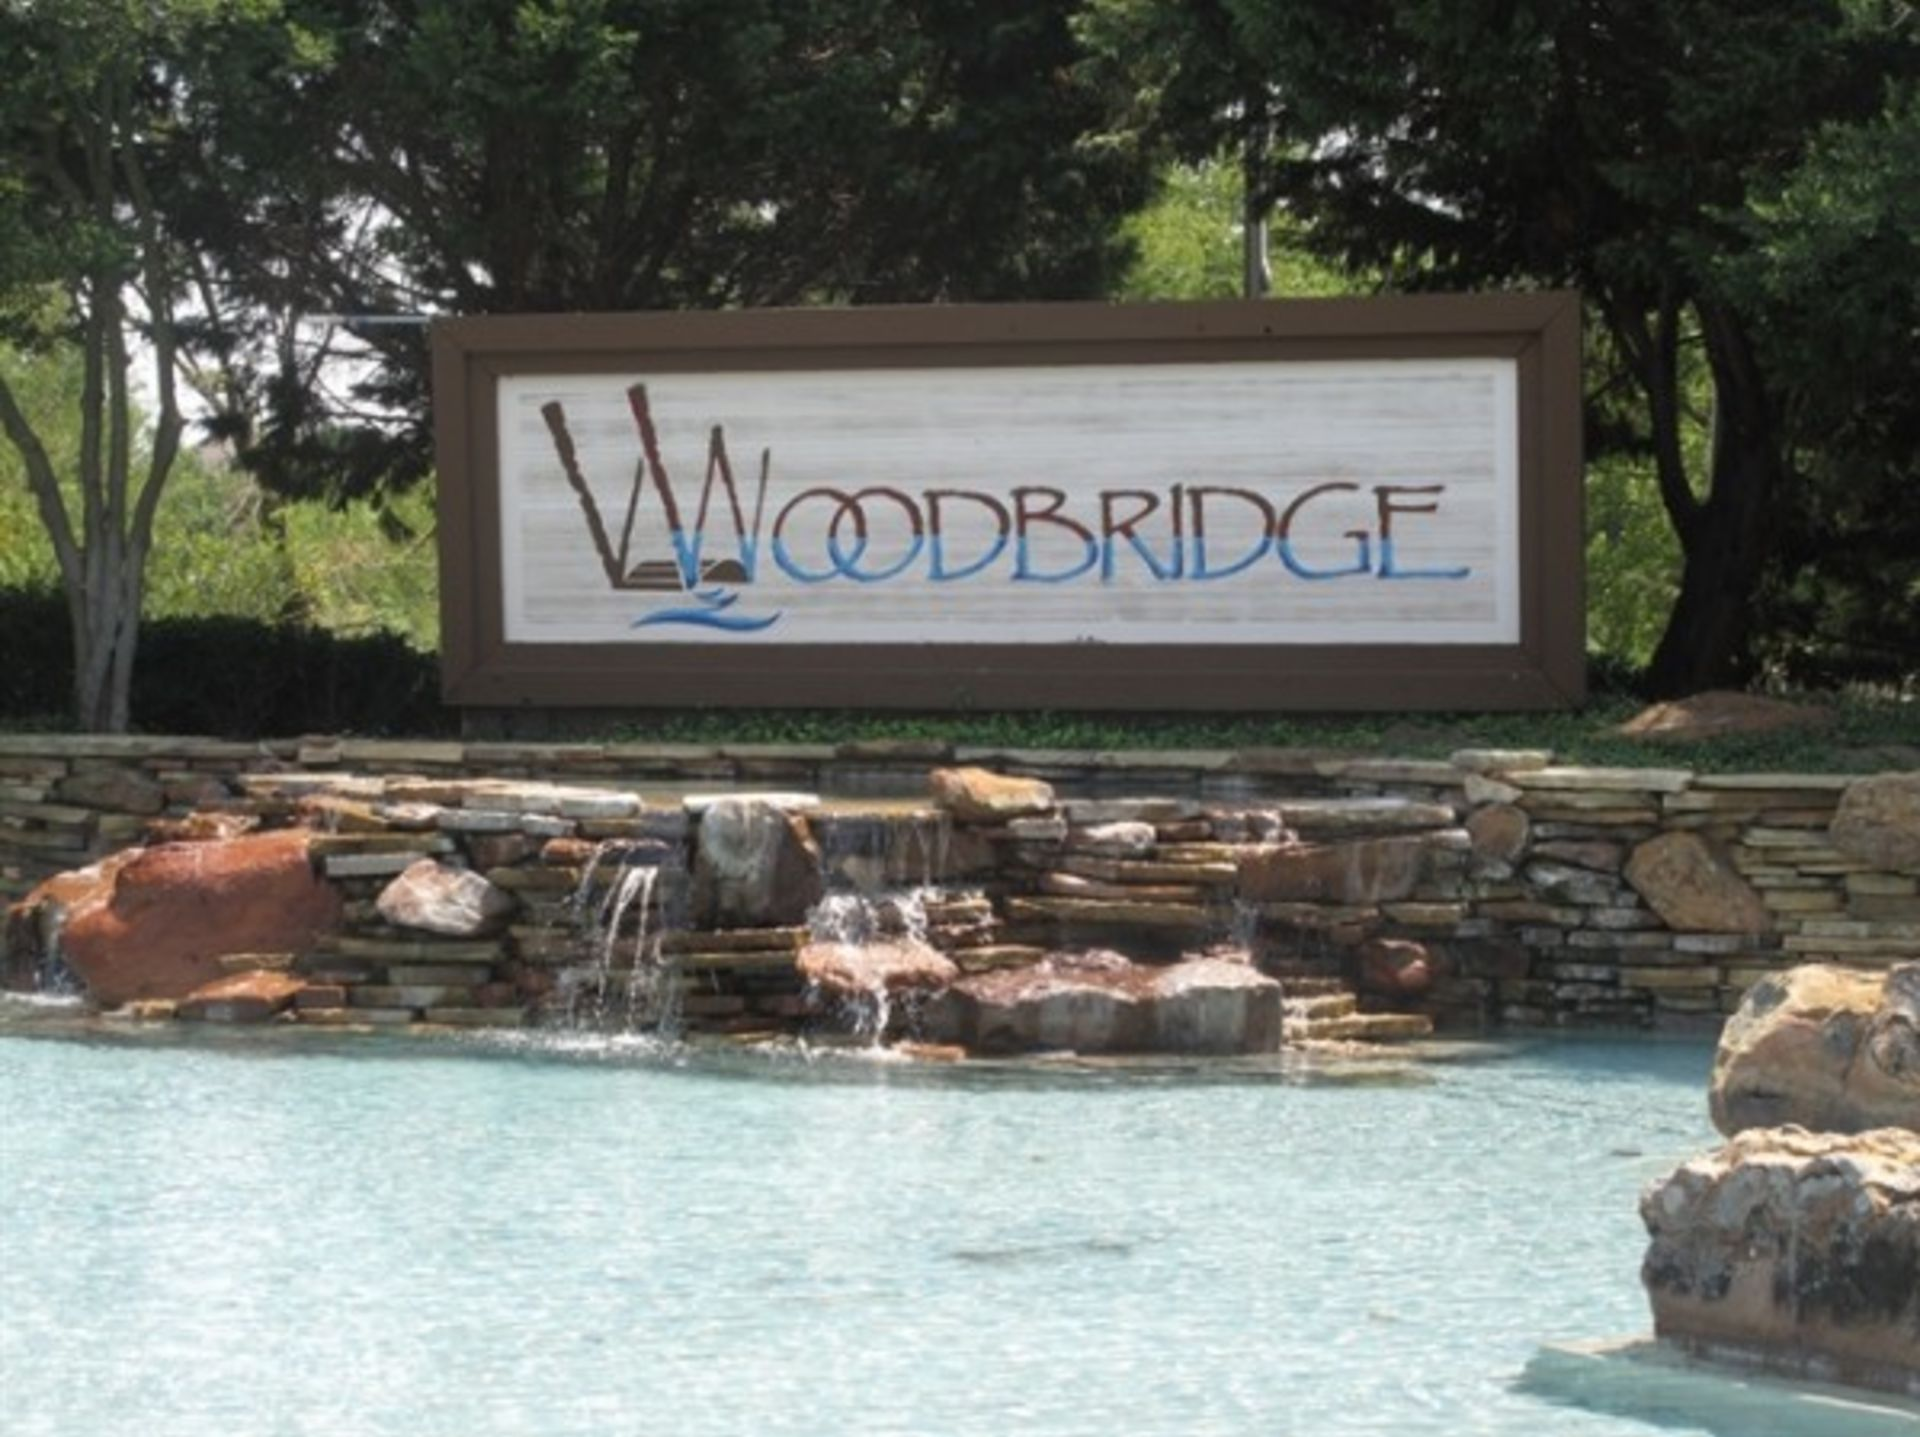 UPDATE – WOODBRIDGE HOA ARCHITECTURAL REVIEW COMMITTEE (ARC)